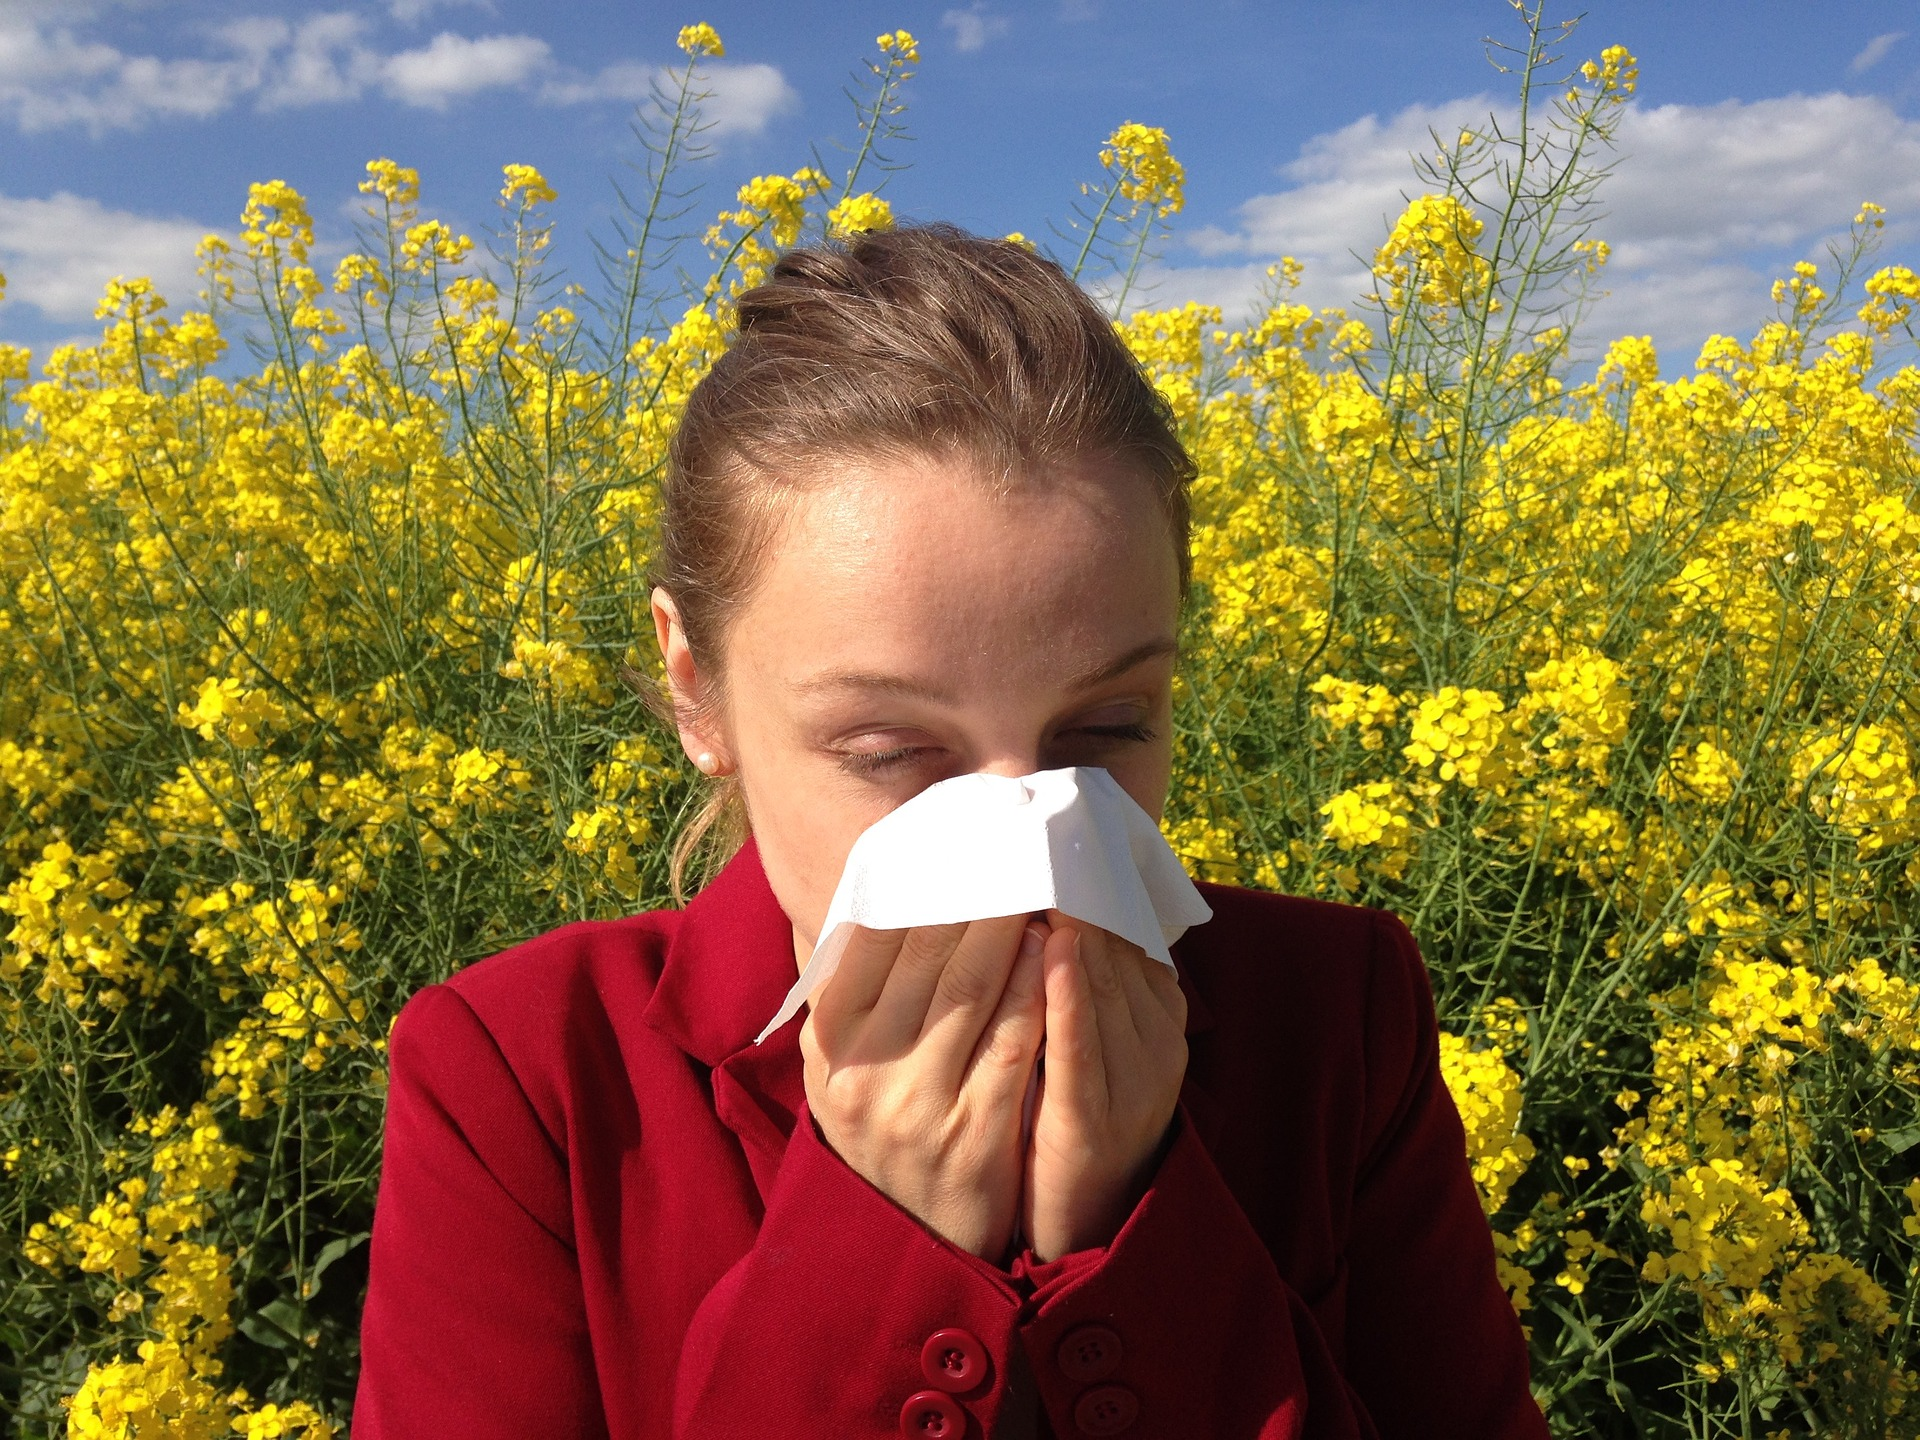 Seasonal Allergies or Asthma?